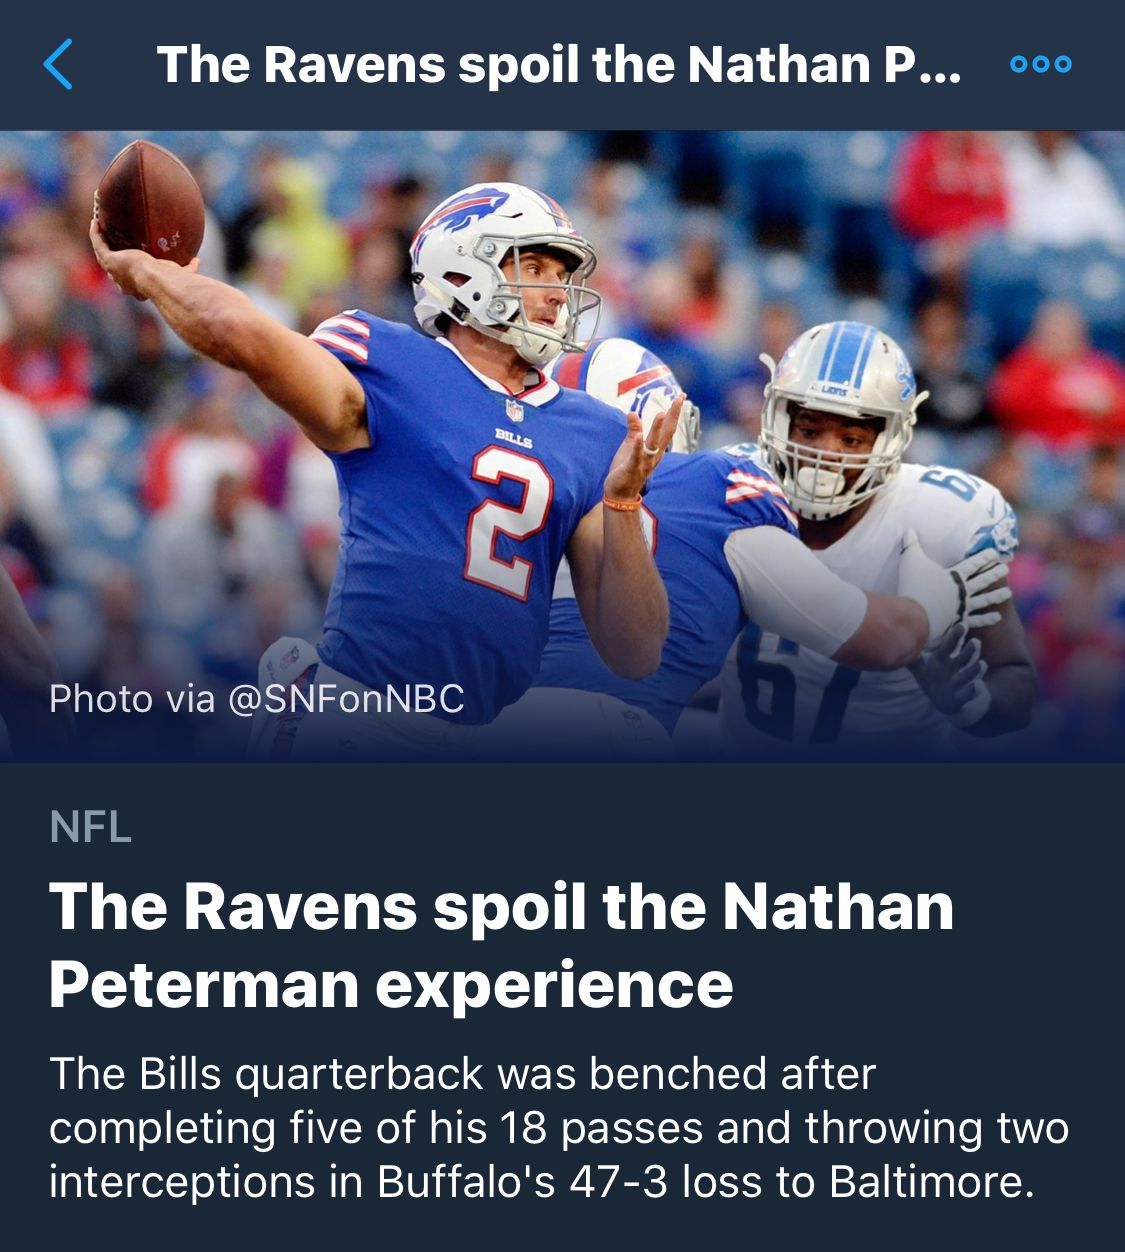 Whoever Runs The Twitter Moments Has Clearly Never Watched Nathan Peterman Play Football